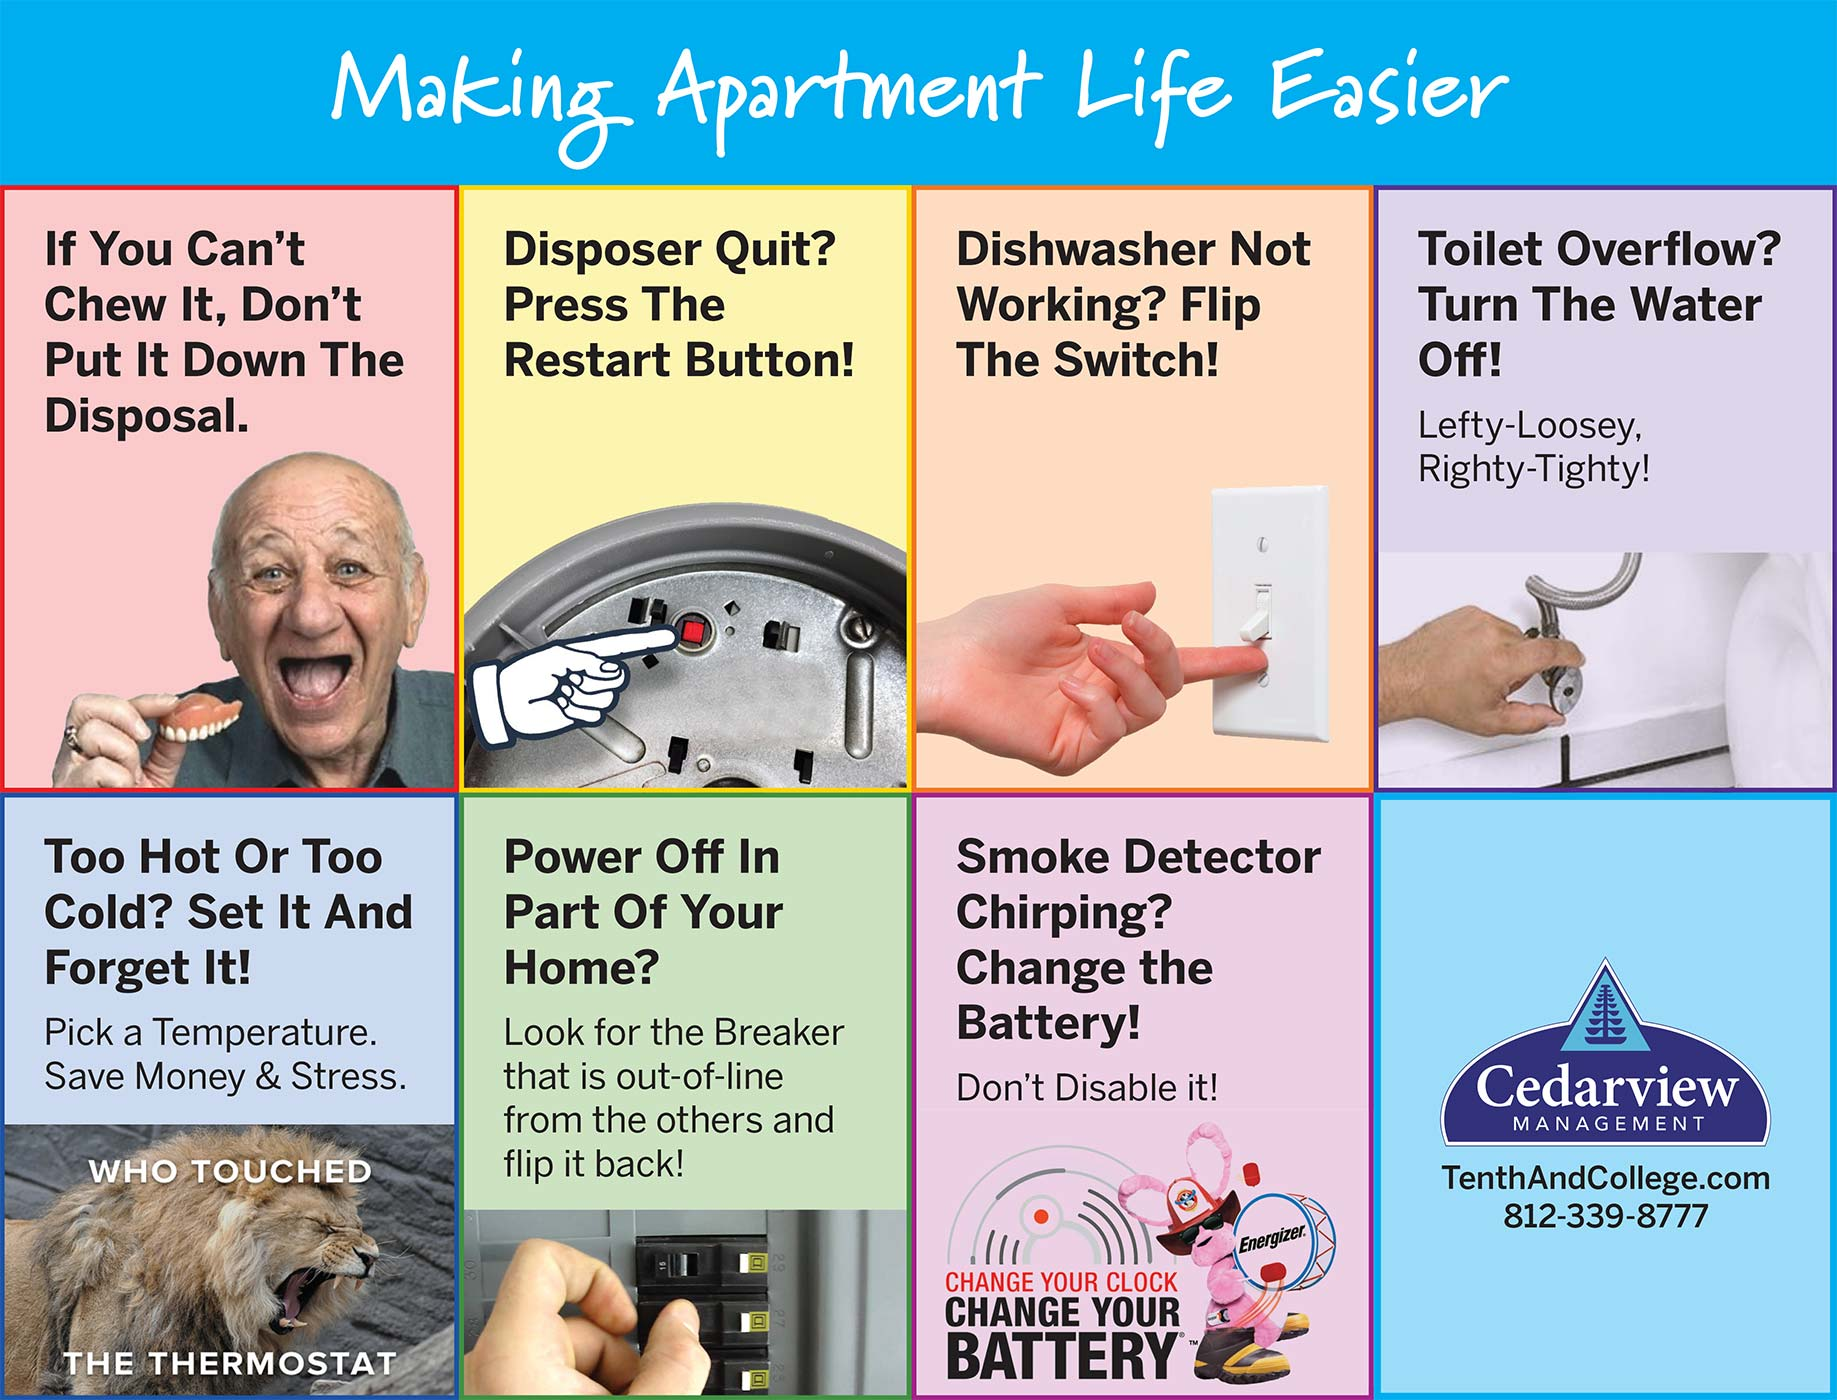 7 Simple Maintenance Quick Tips for Apartment Living